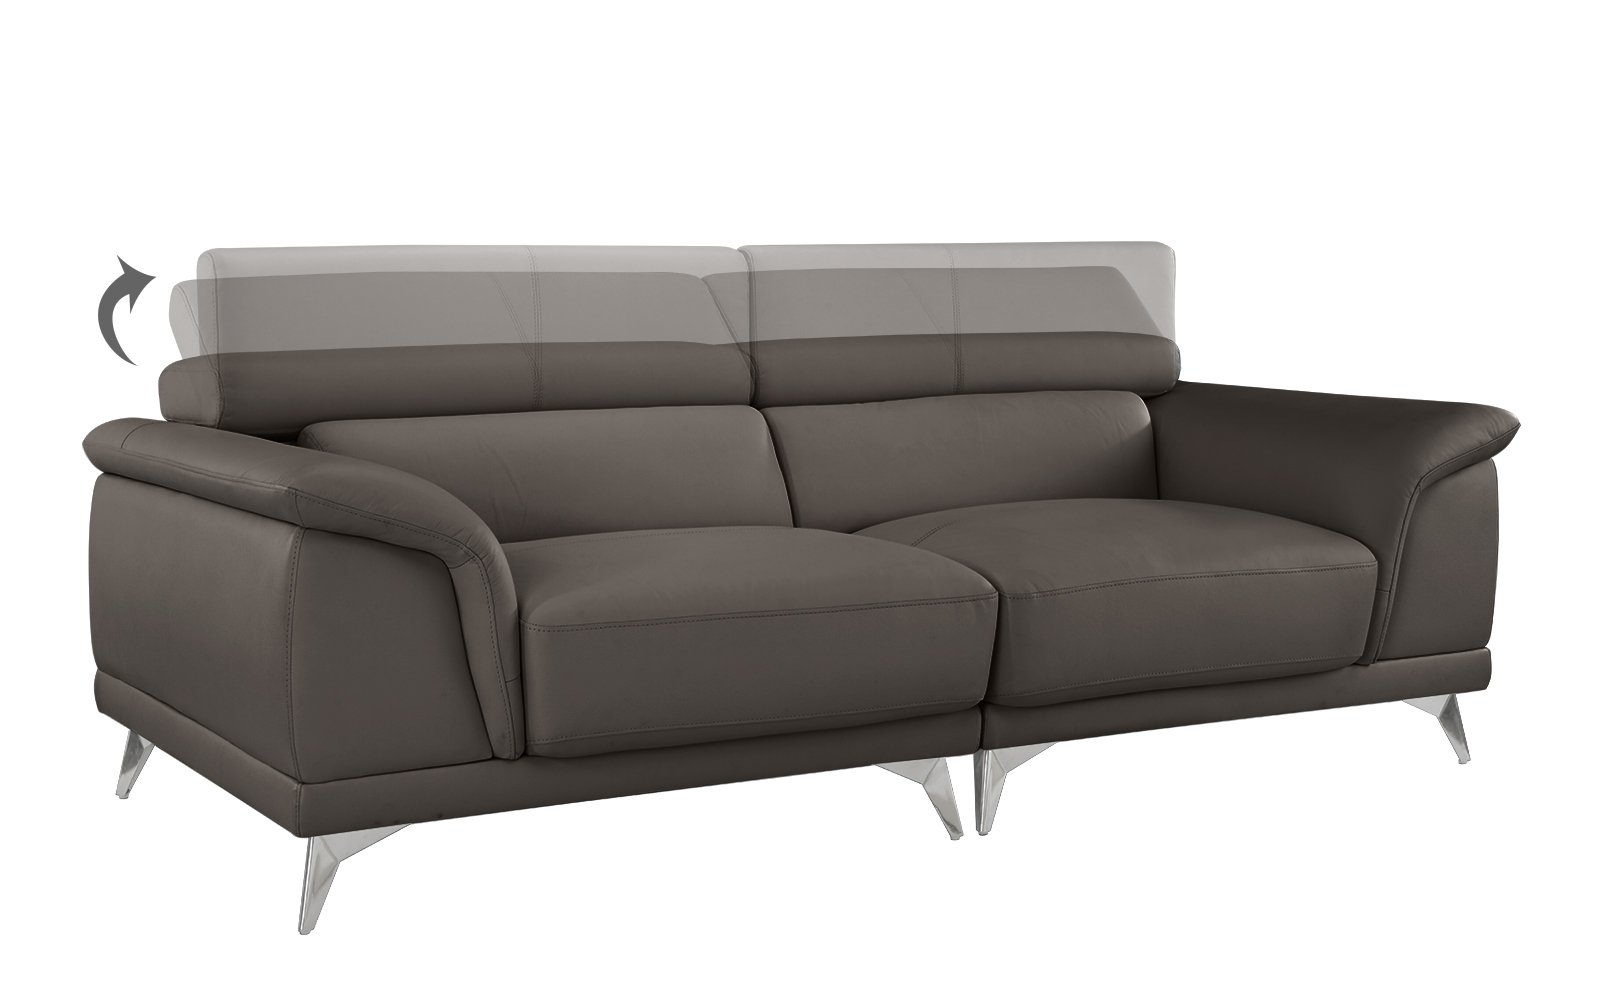 Divano Roma Furniture Modern Living Room Sofa with Adjustable Headrest (Grey) - Modern style couch featuring adjustable headrests to add a touch of modernism and functionality that is sure to make a statement. This living room sofa is upholstered in leather match on hardwood frame with steel chrome legs. Arm rests are designed to give this sofa a unique look and feel; the seats and back rest are are filled with firm foam made to last. - sofas-couches, living-room-furniture, living-room - 61EC 56U hL -